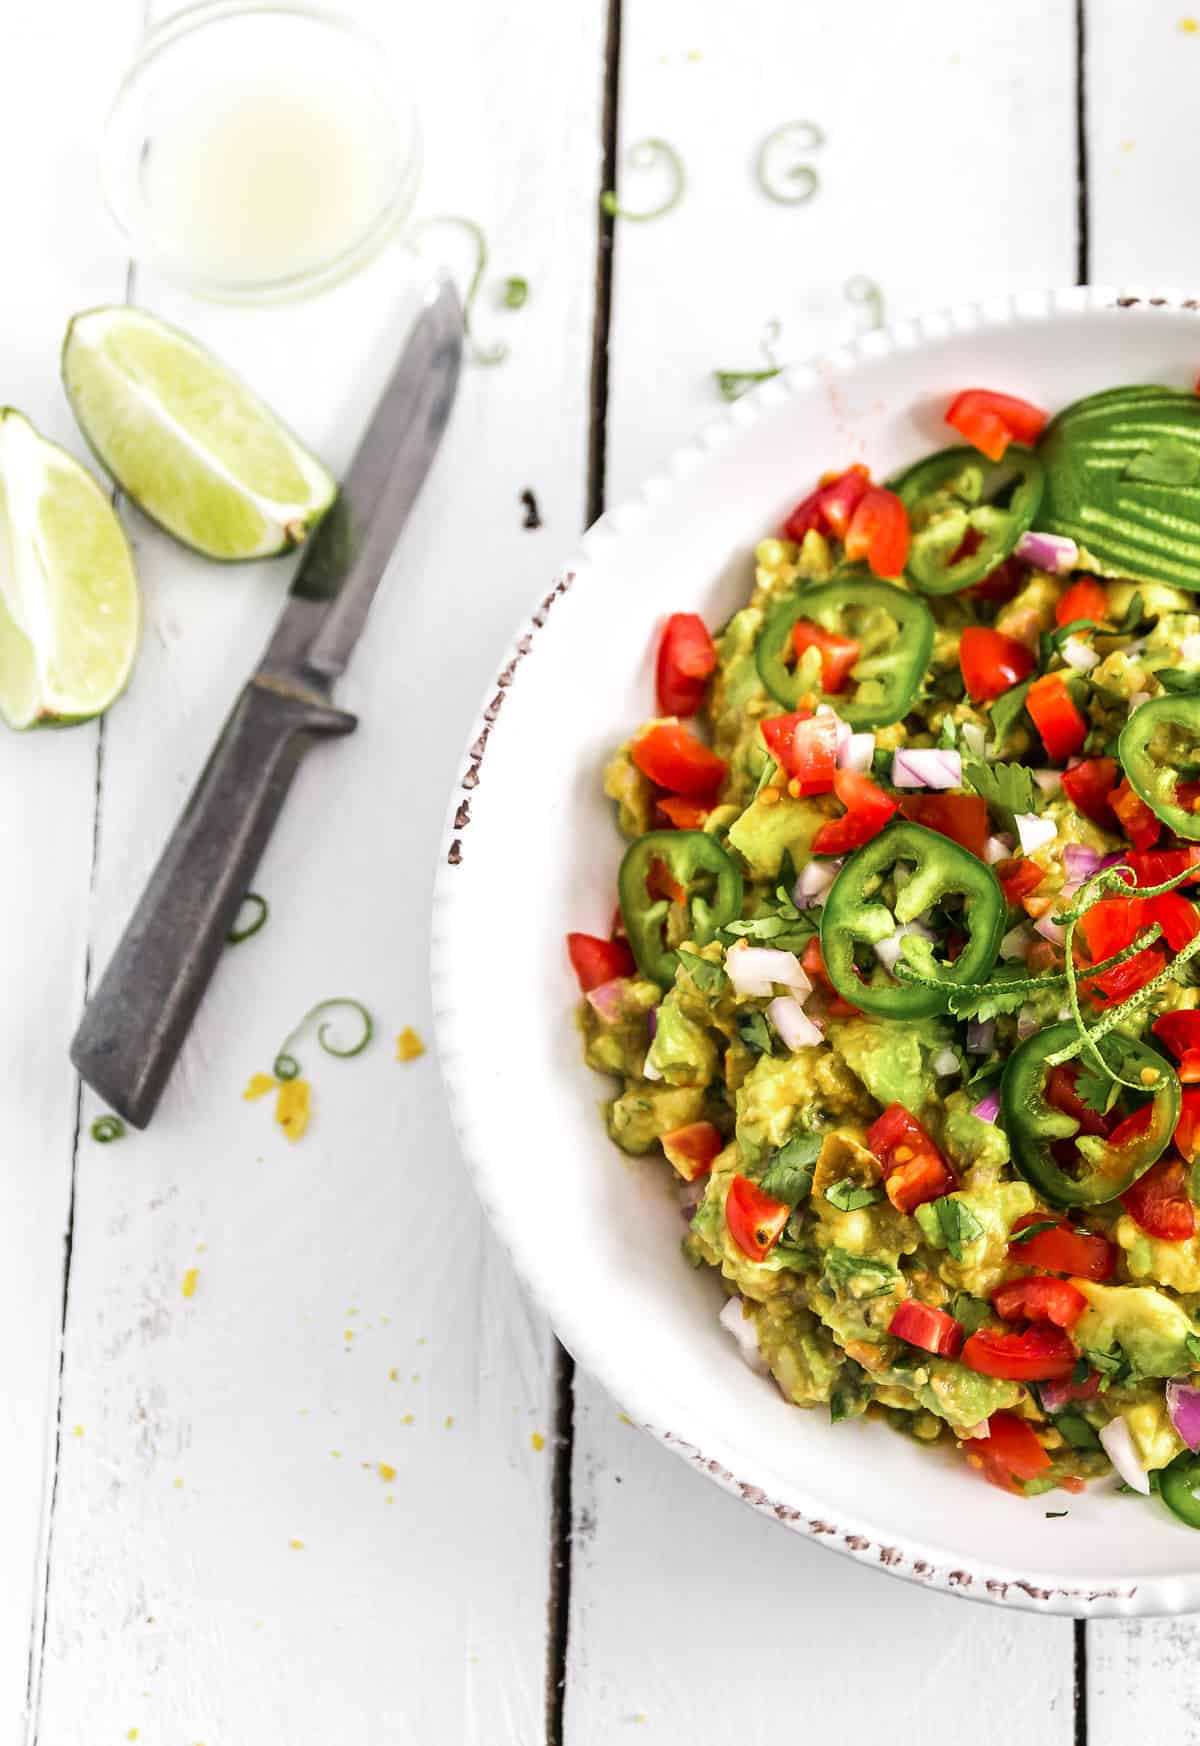 Guacamole, plant based, vegan, vegetarian, whole food plant based, gluten free, recipe, wfpb, healthy, healthy vegan, oil free, no refined sugar, no oil, refined sugar free, dairy free, appetizer, snack, avocados, dip, salsa